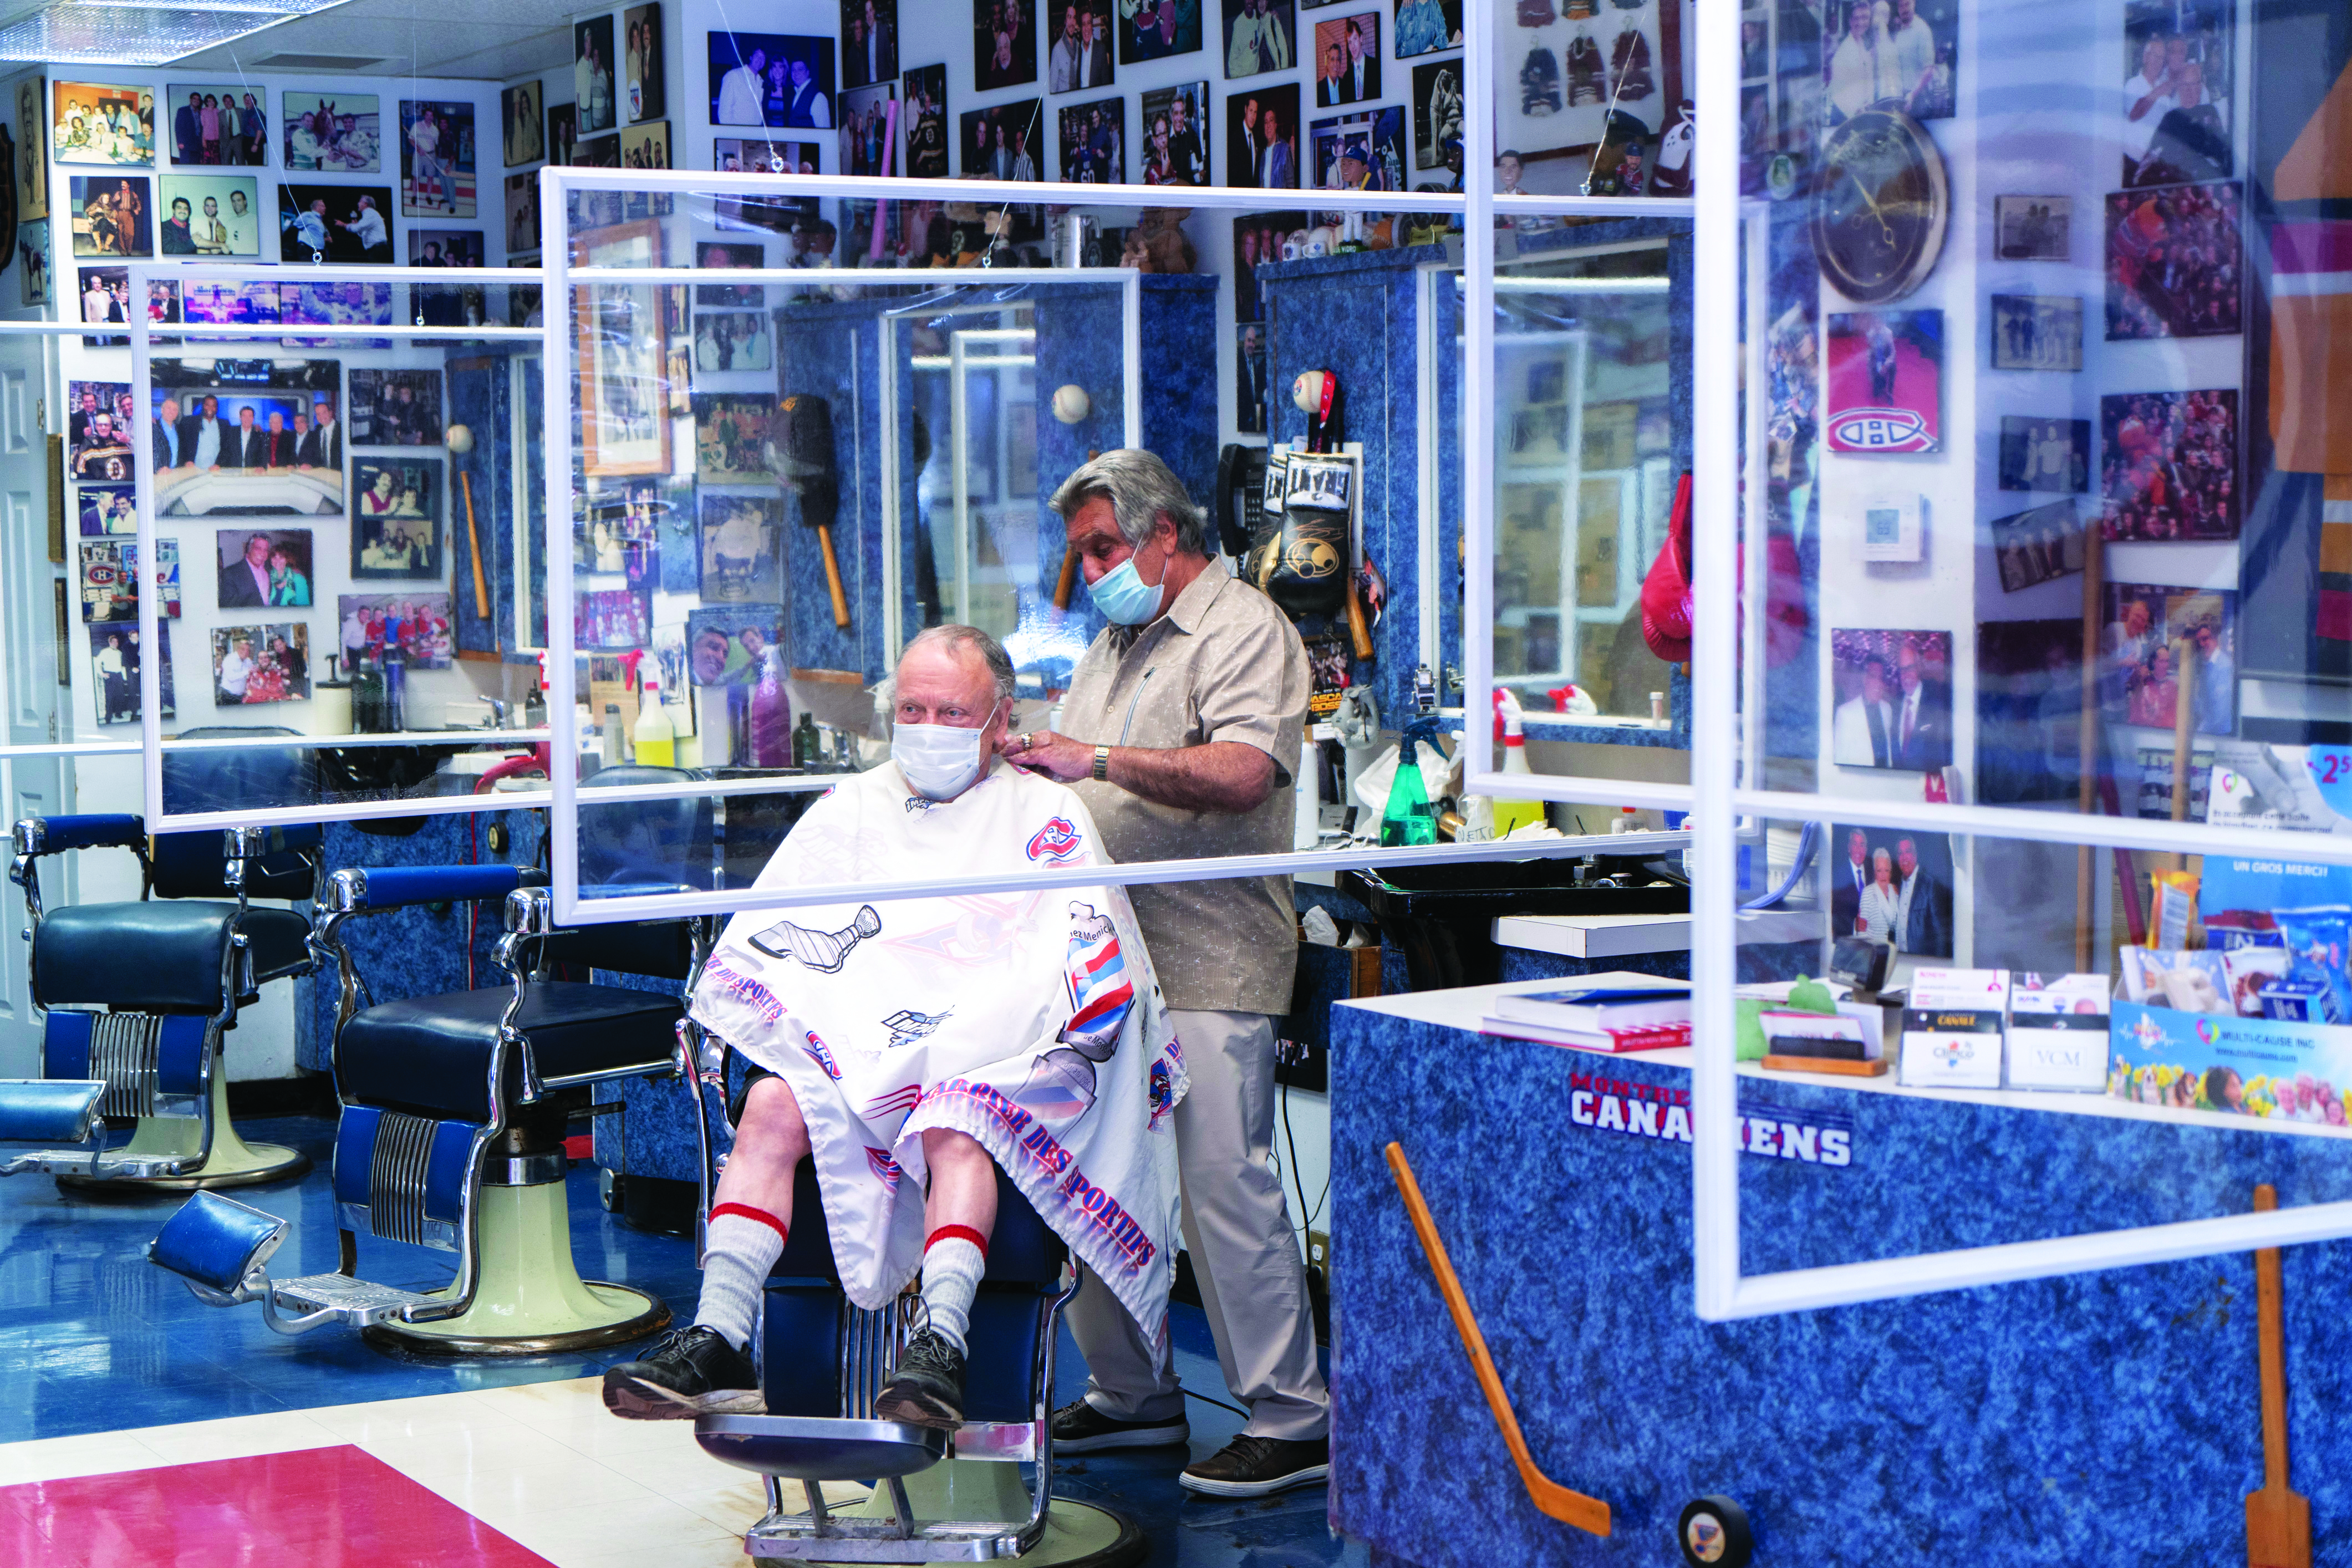 A man gets a haircut in a barber shop where people wear masks and plexiglass dividers separate clients